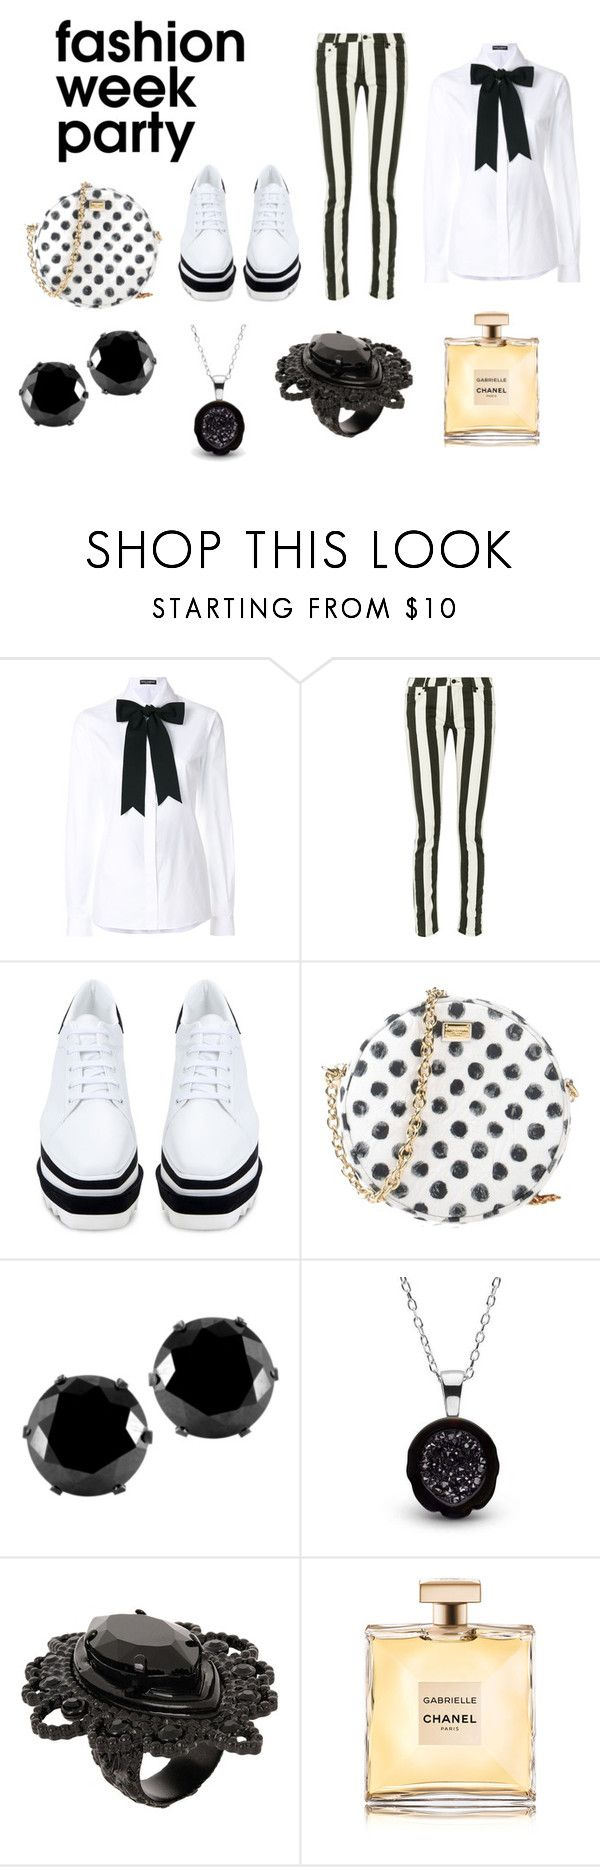 """""""Sans titre #381"""" by c-isabel1991 ❤ liked on Polyvore featuring Dolce&Gabbana, Off-White, STELLA McCARTNEY, West Coast Jewelry, Dsquared2 and Chanel"""